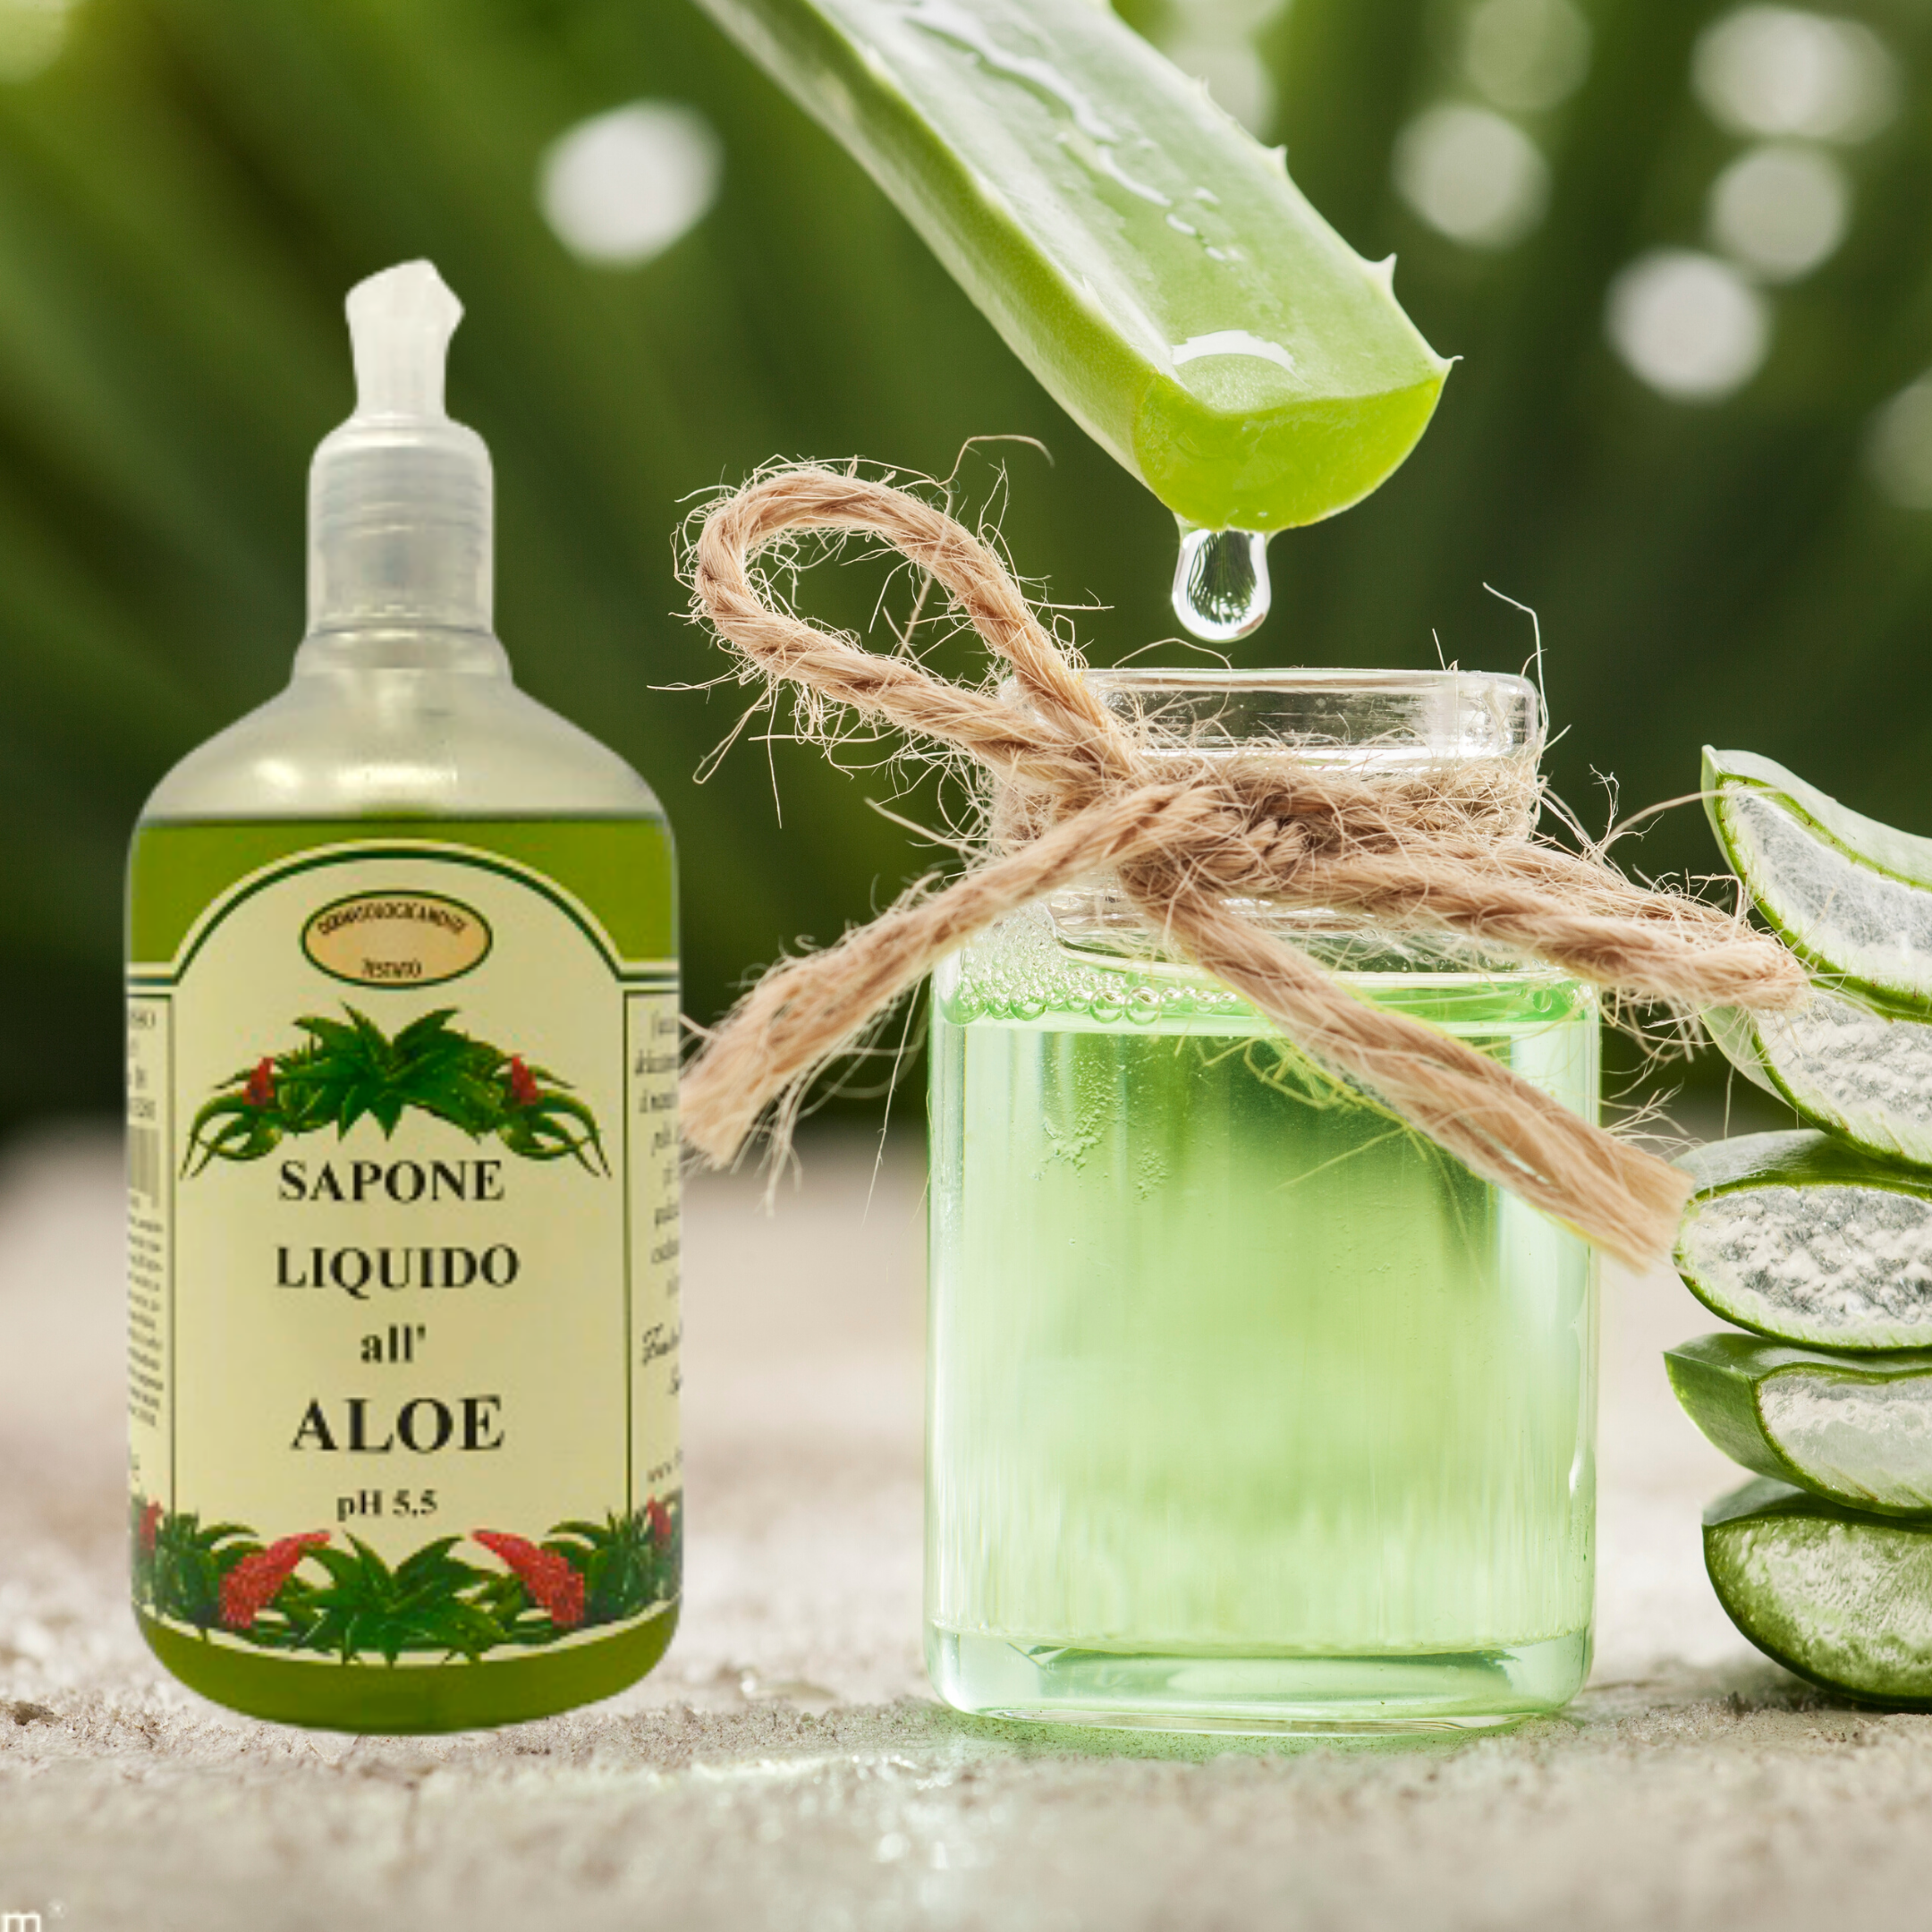 Sapone liquido all'aloe 500 ml